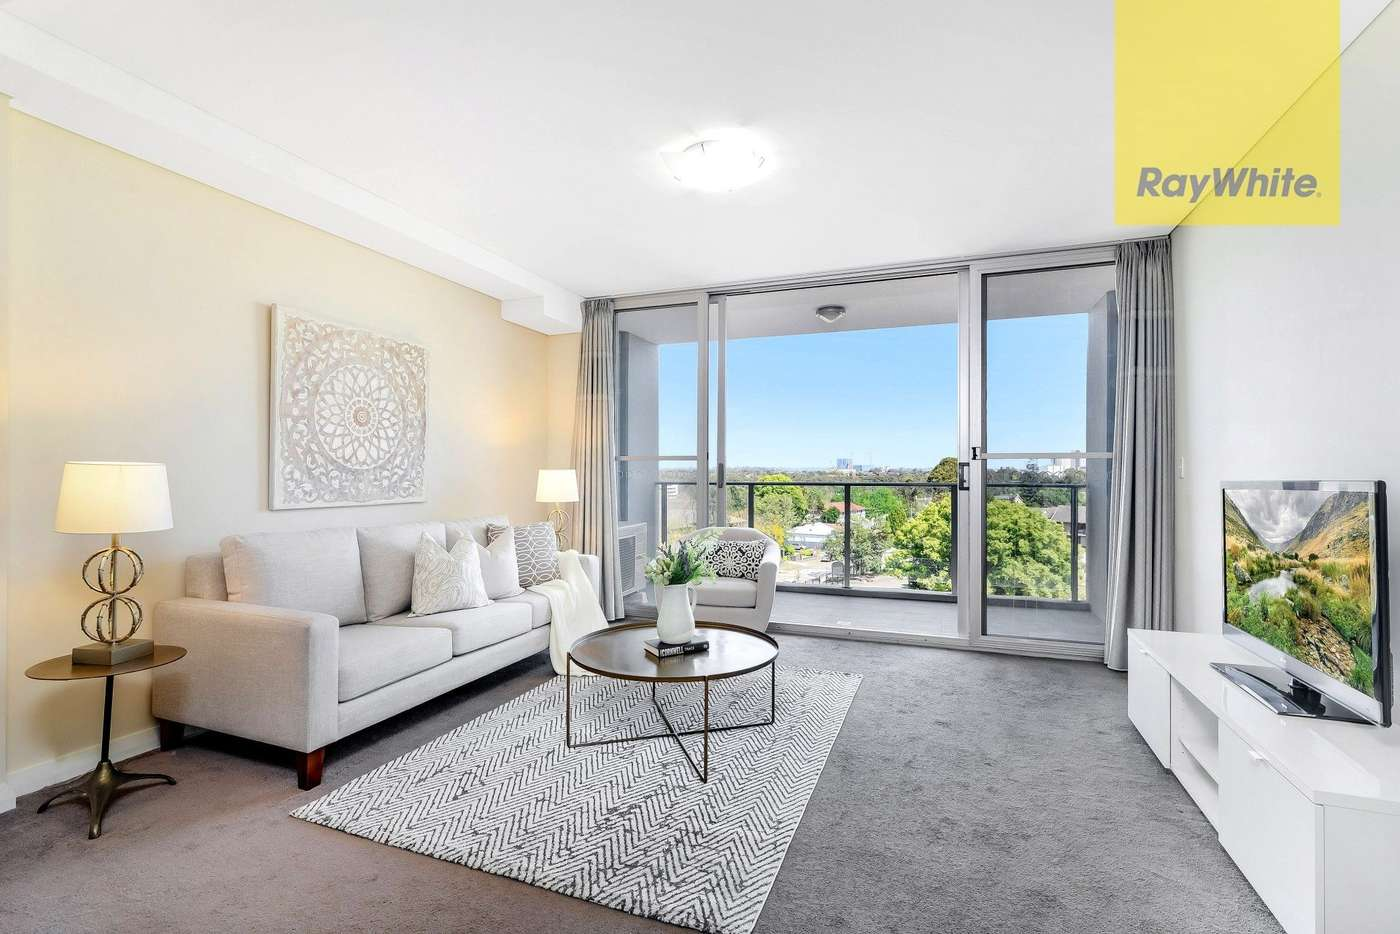 Fifth view of Homely apartment listing, 88/459-463 Church Street, Parramatta NSW 2150